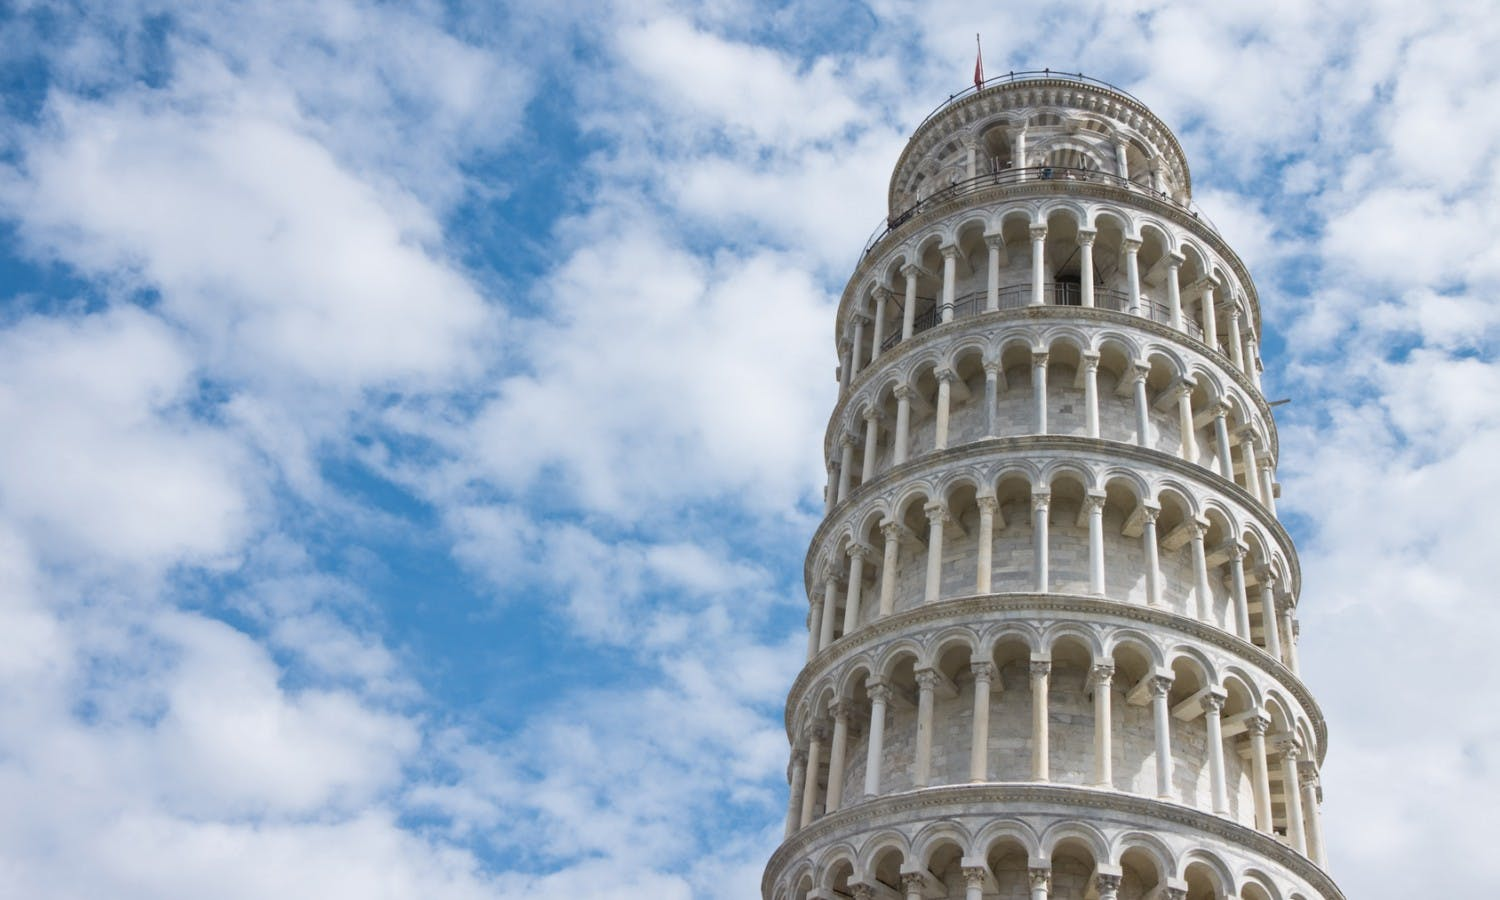 Livorno - Florence - Pisa low cost roundtrip transfer